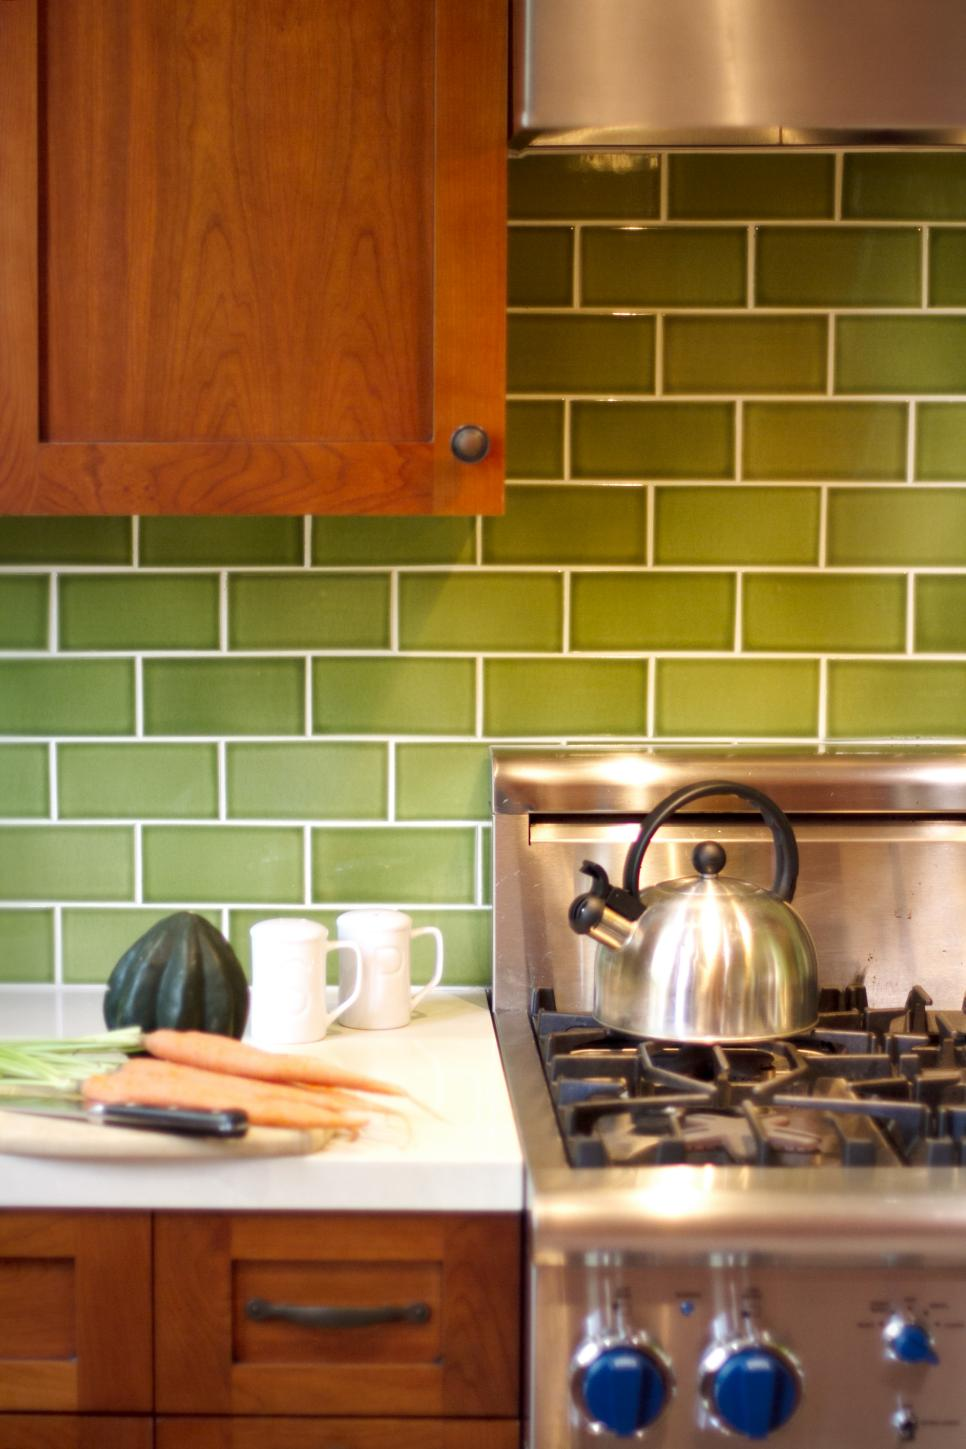 Kitchen Backsplash Green 11 creative subway tile backsplash ideas | hgtv